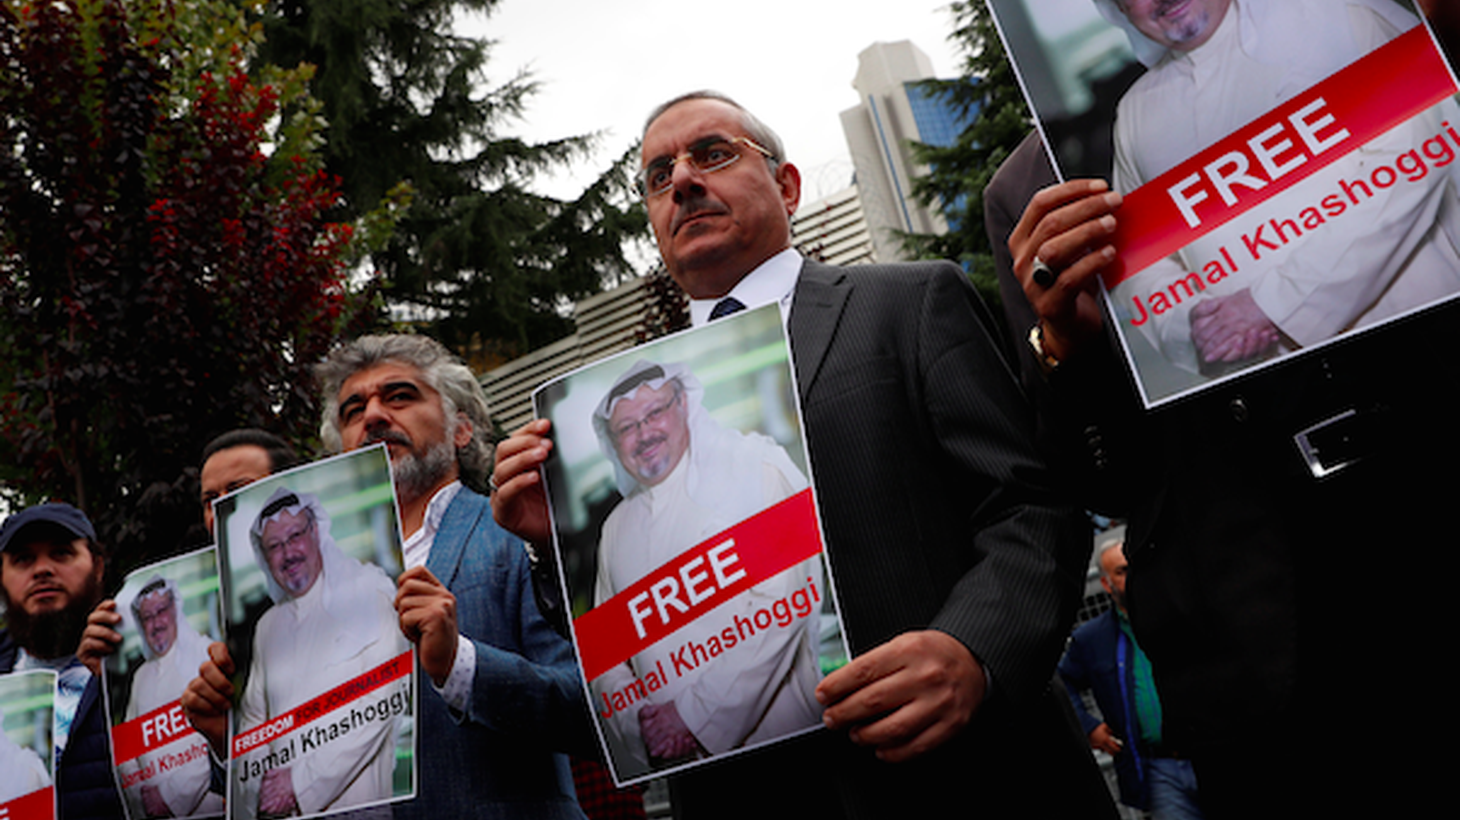 Reports of Jamal Khashoggi's torture inside the Saudi consulate in Istanbul are disturbing, but the Trump administration is still siding with the Saudis. We talk about how Saudi Arabia became so important to the U.S.